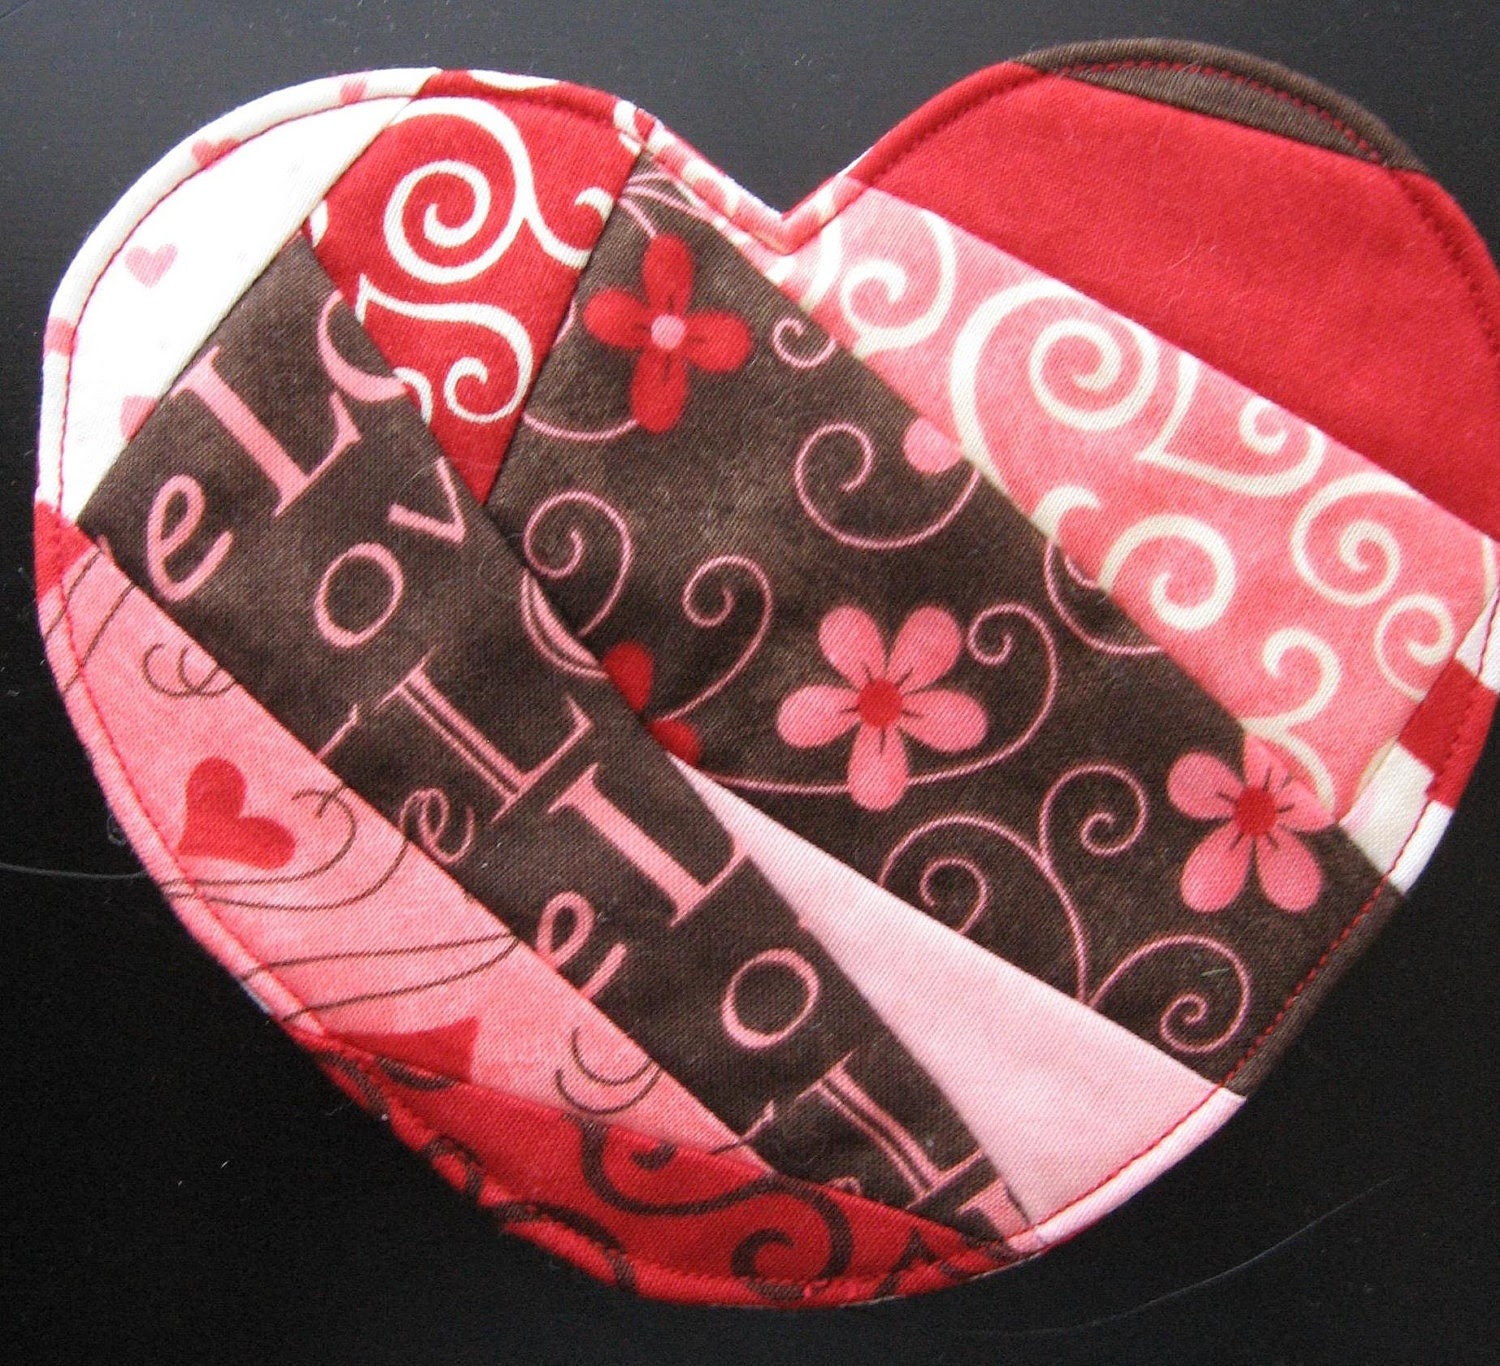 Scrappy Red and Pink Heart Coaster No. 3 for Valentine's Day, Free Shipping